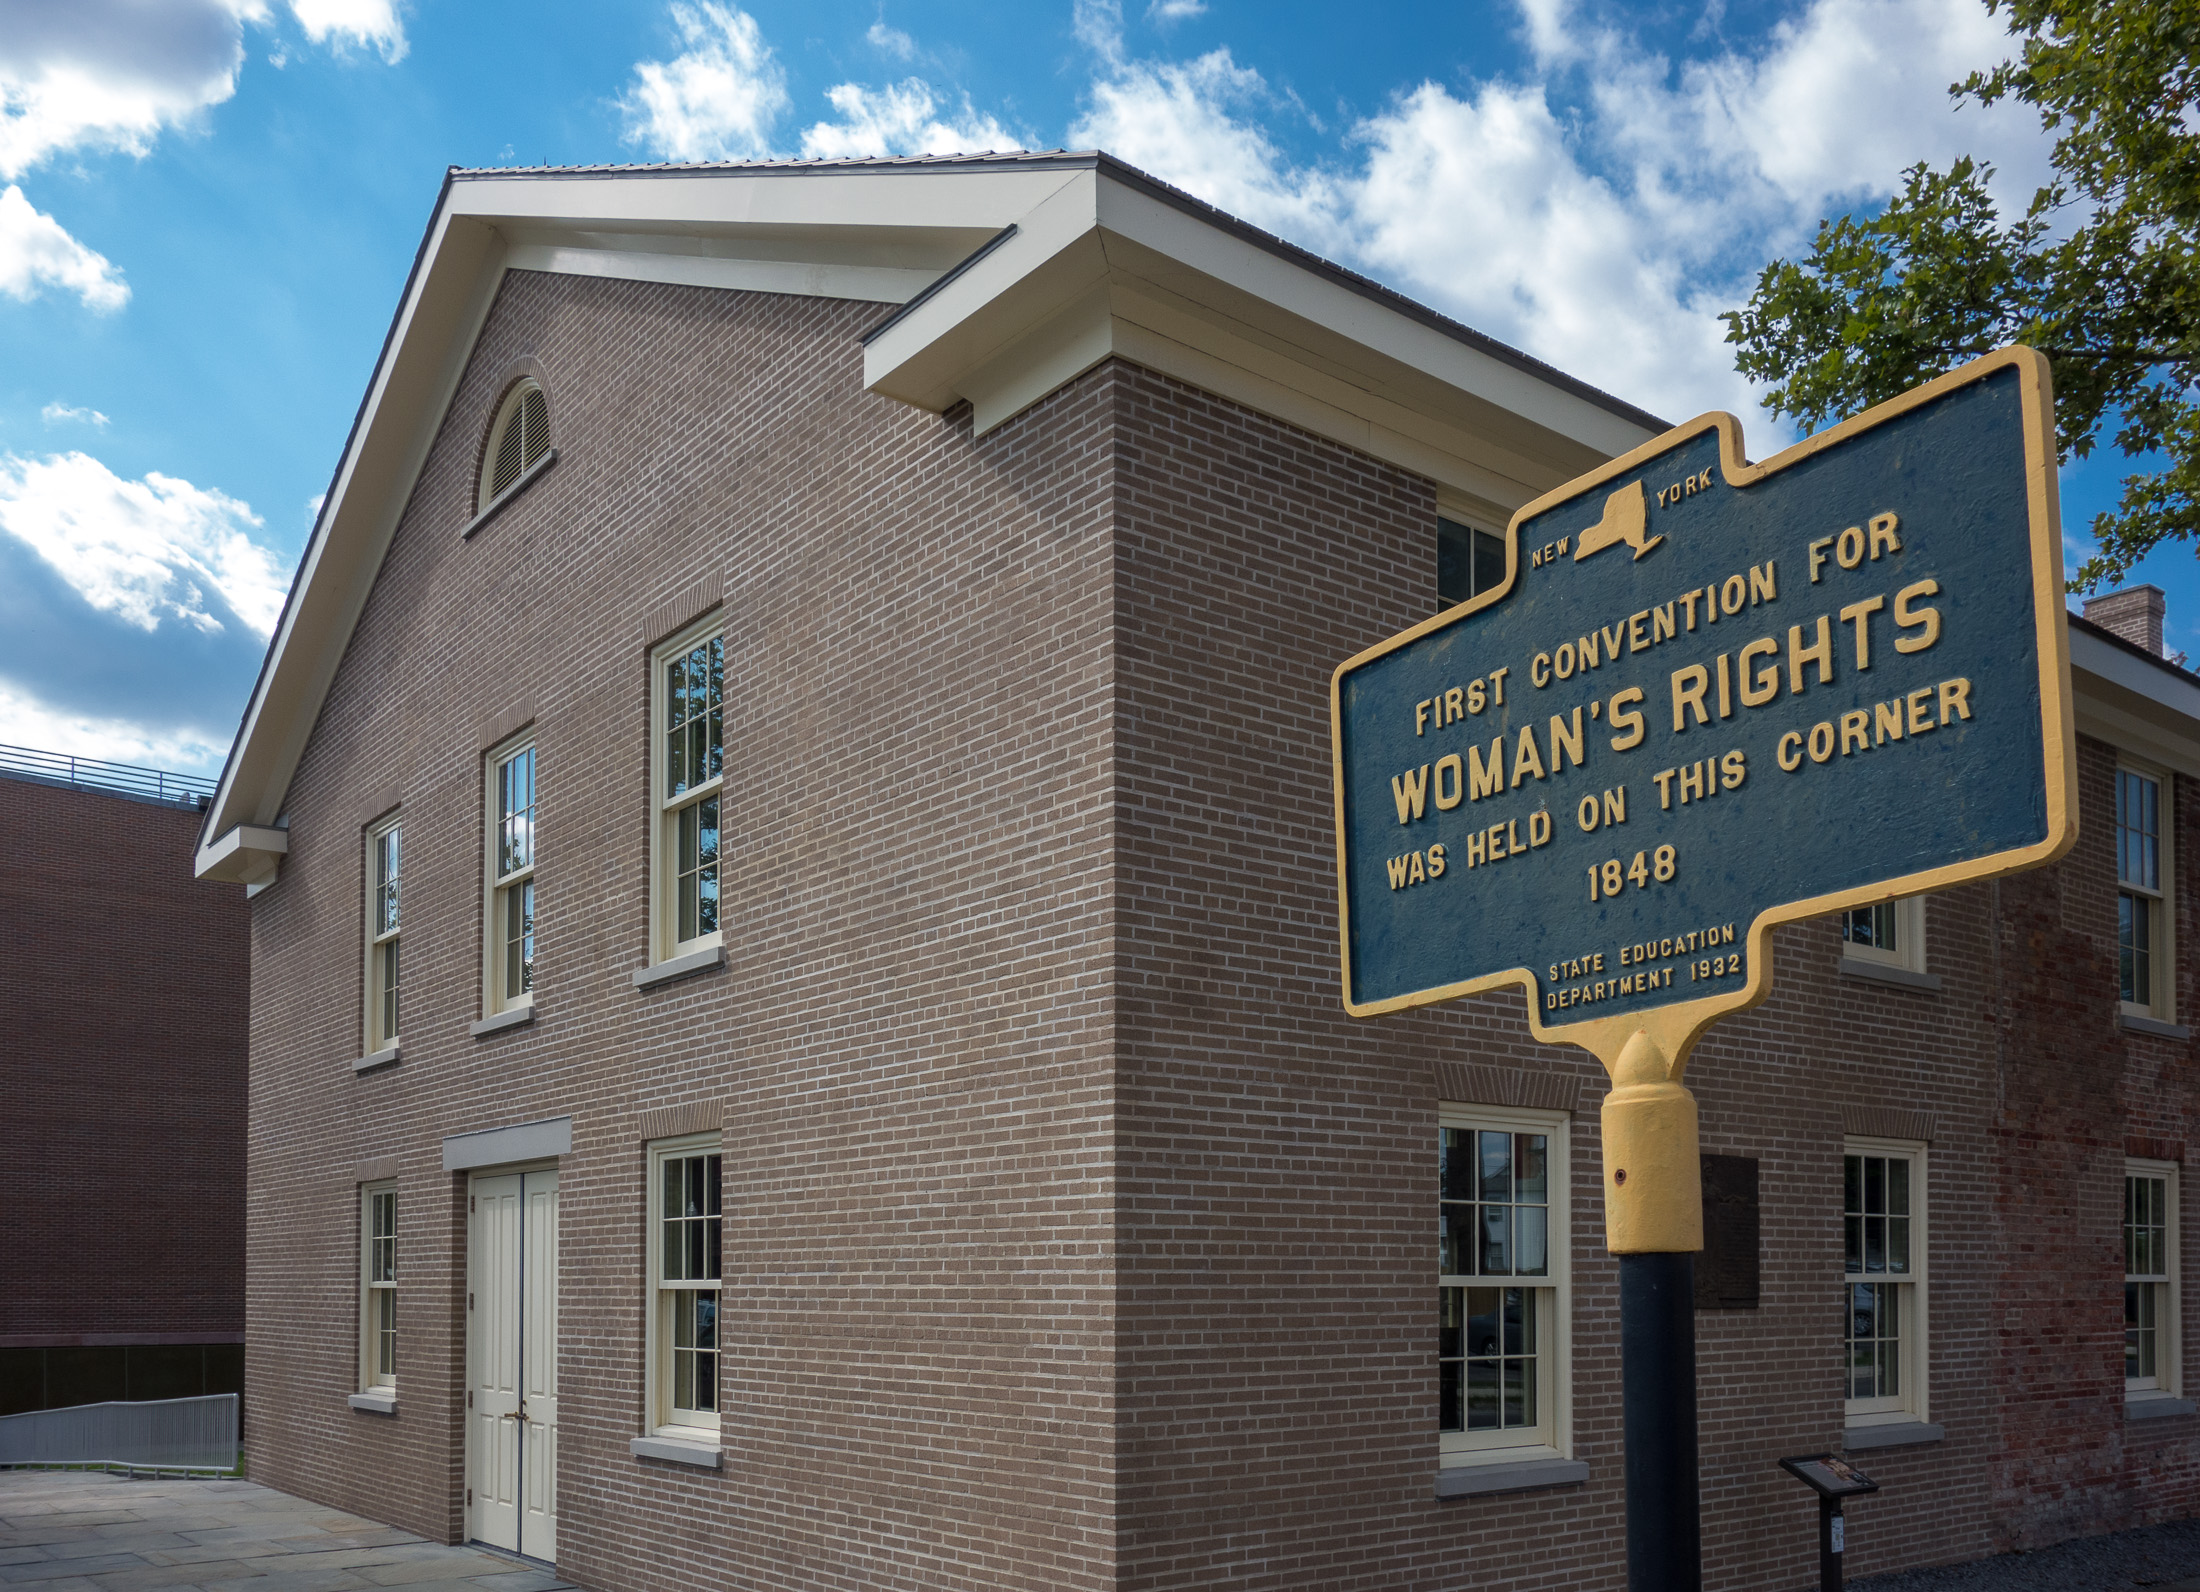 declaration of sentiments and resolutions wesleyan methodist church